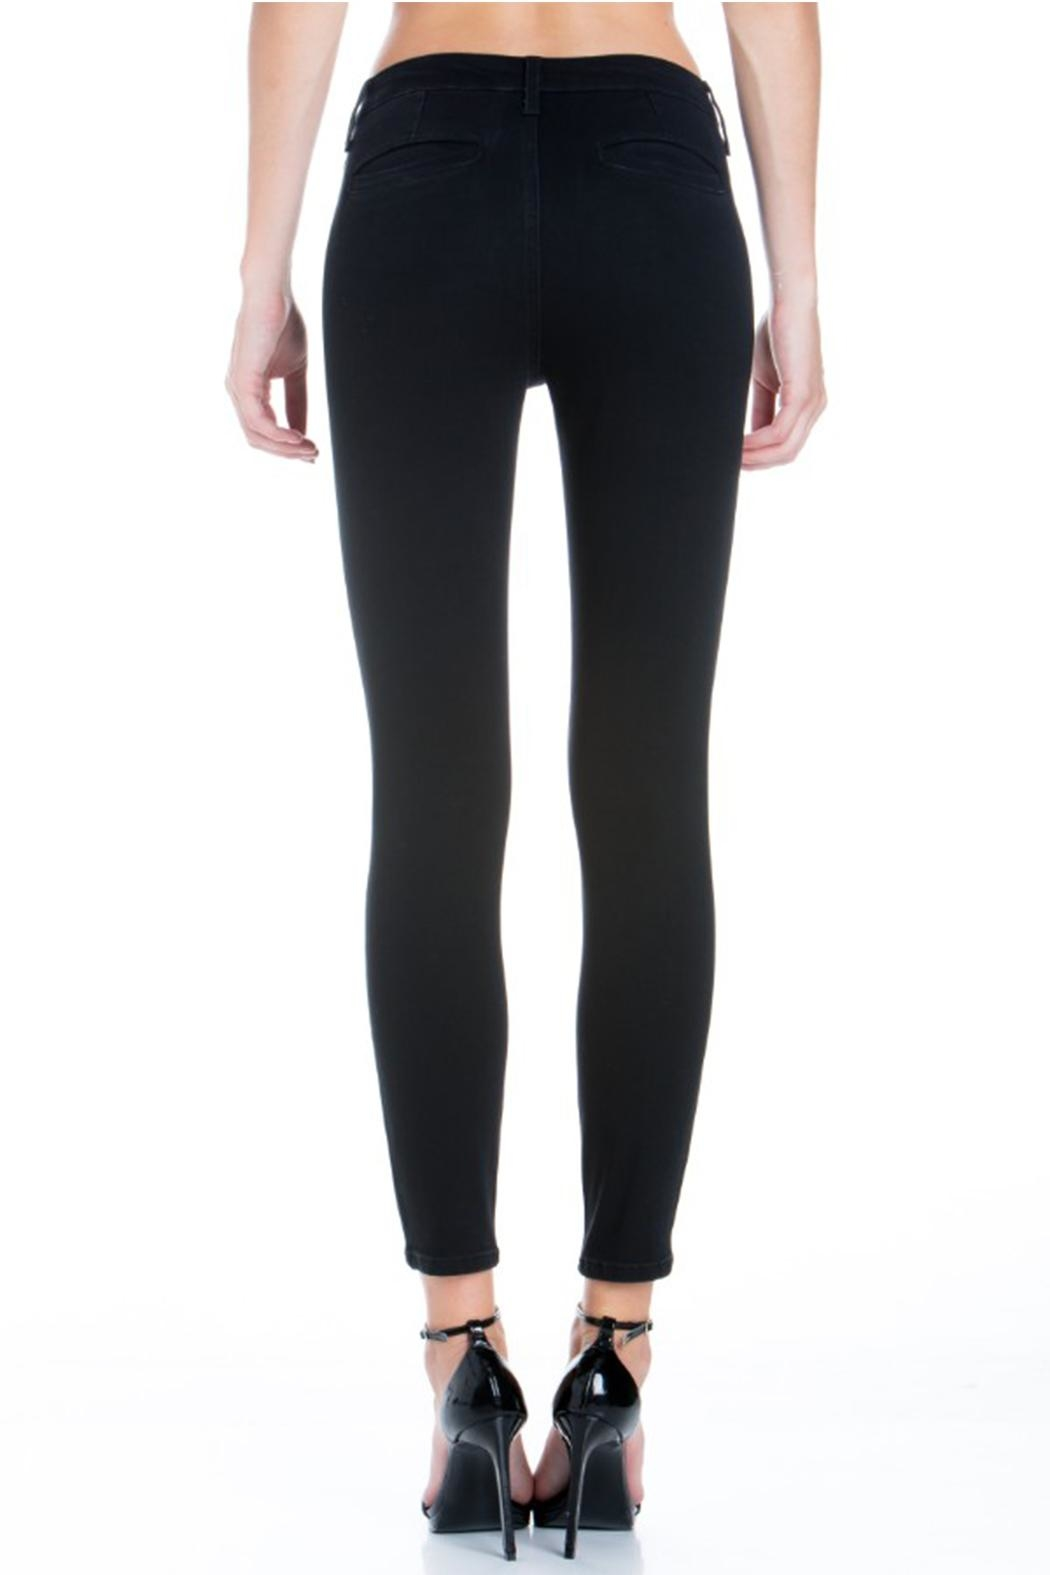 Cello Jeans Midrise Skinny Pant - Side Cropped Image